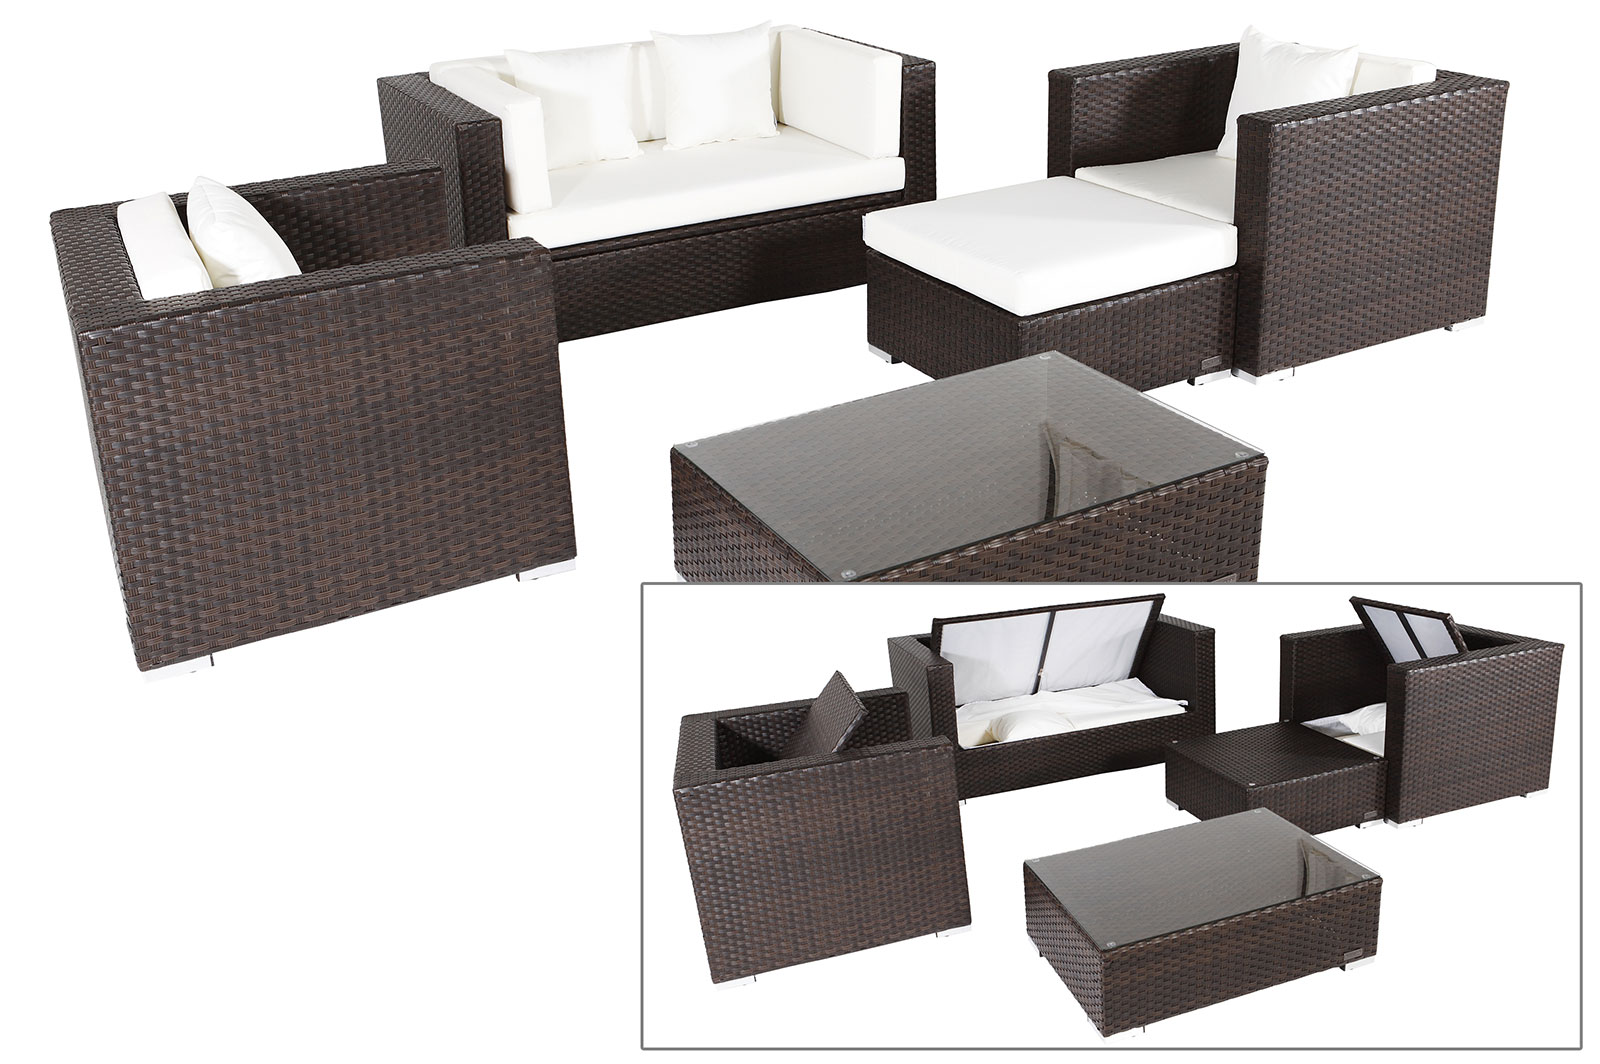 outflexx gartenm bel sitzgruppe aus polyrattan versandkostenfreie m bel. Black Bedroom Furniture Sets. Home Design Ideas